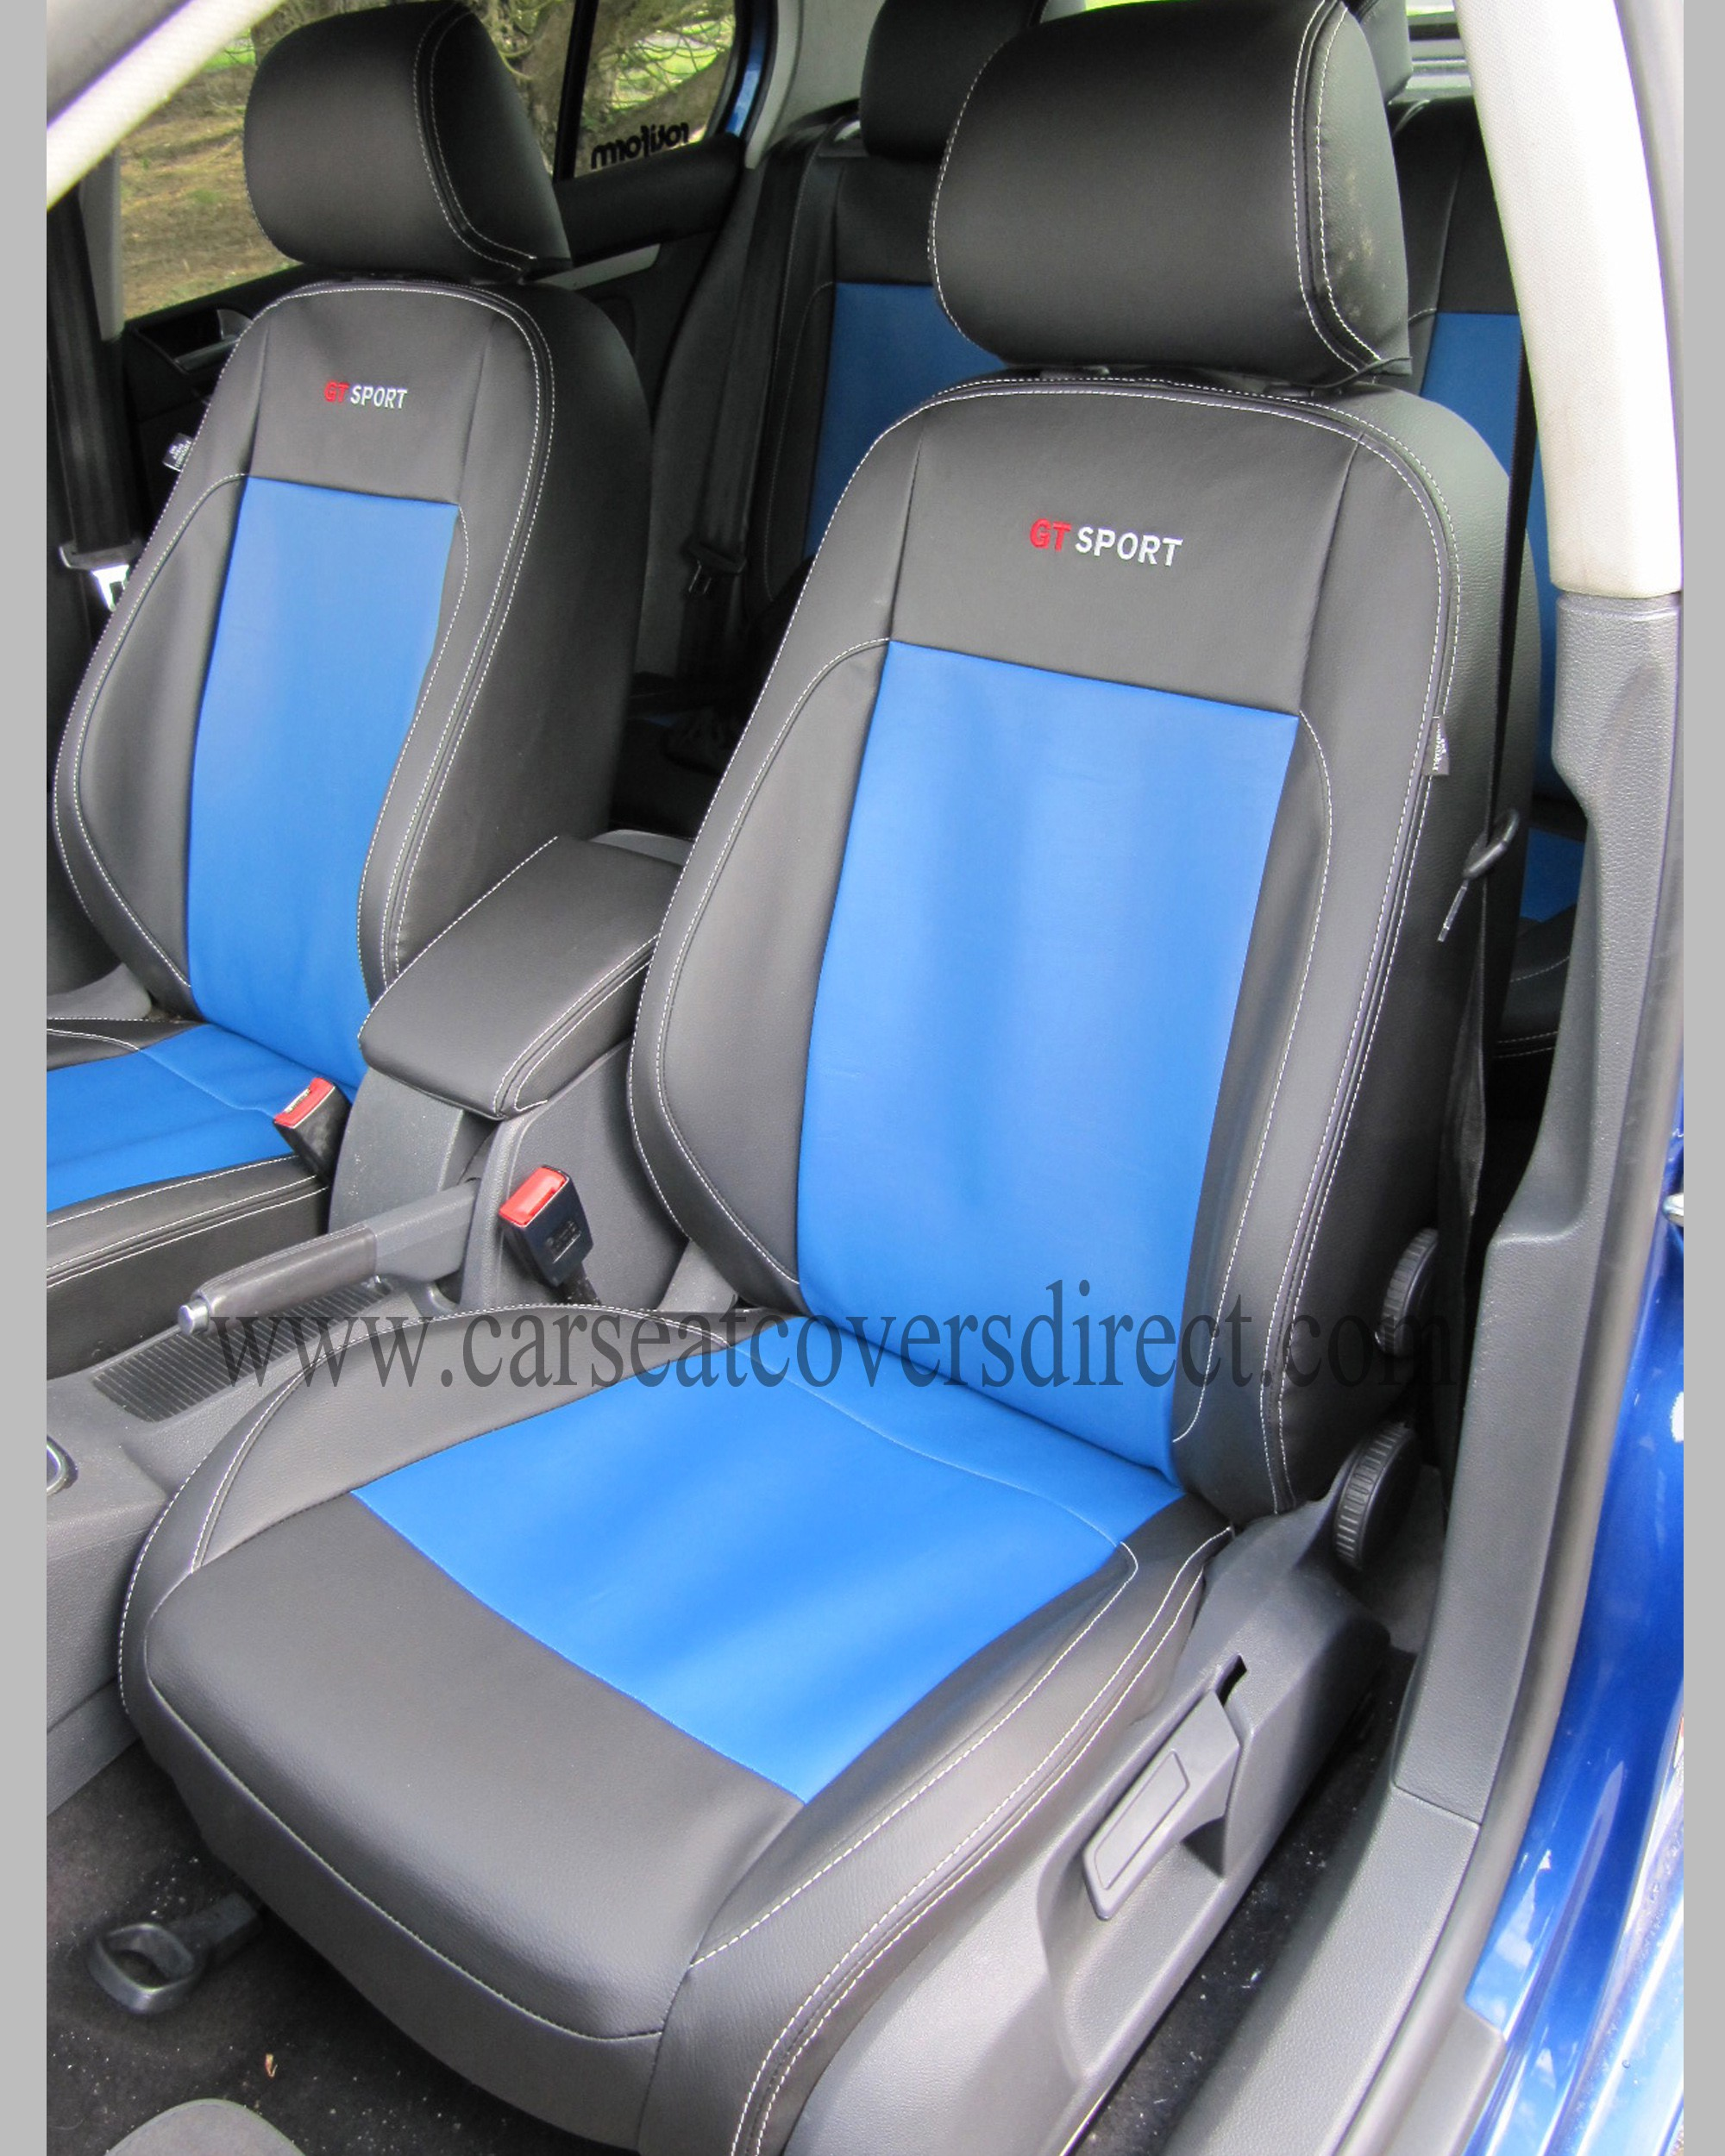 volkswagen vw golf mk5 gt seat covers car seat covers direct tailored to your choice. Black Bedroom Furniture Sets. Home Design Ideas